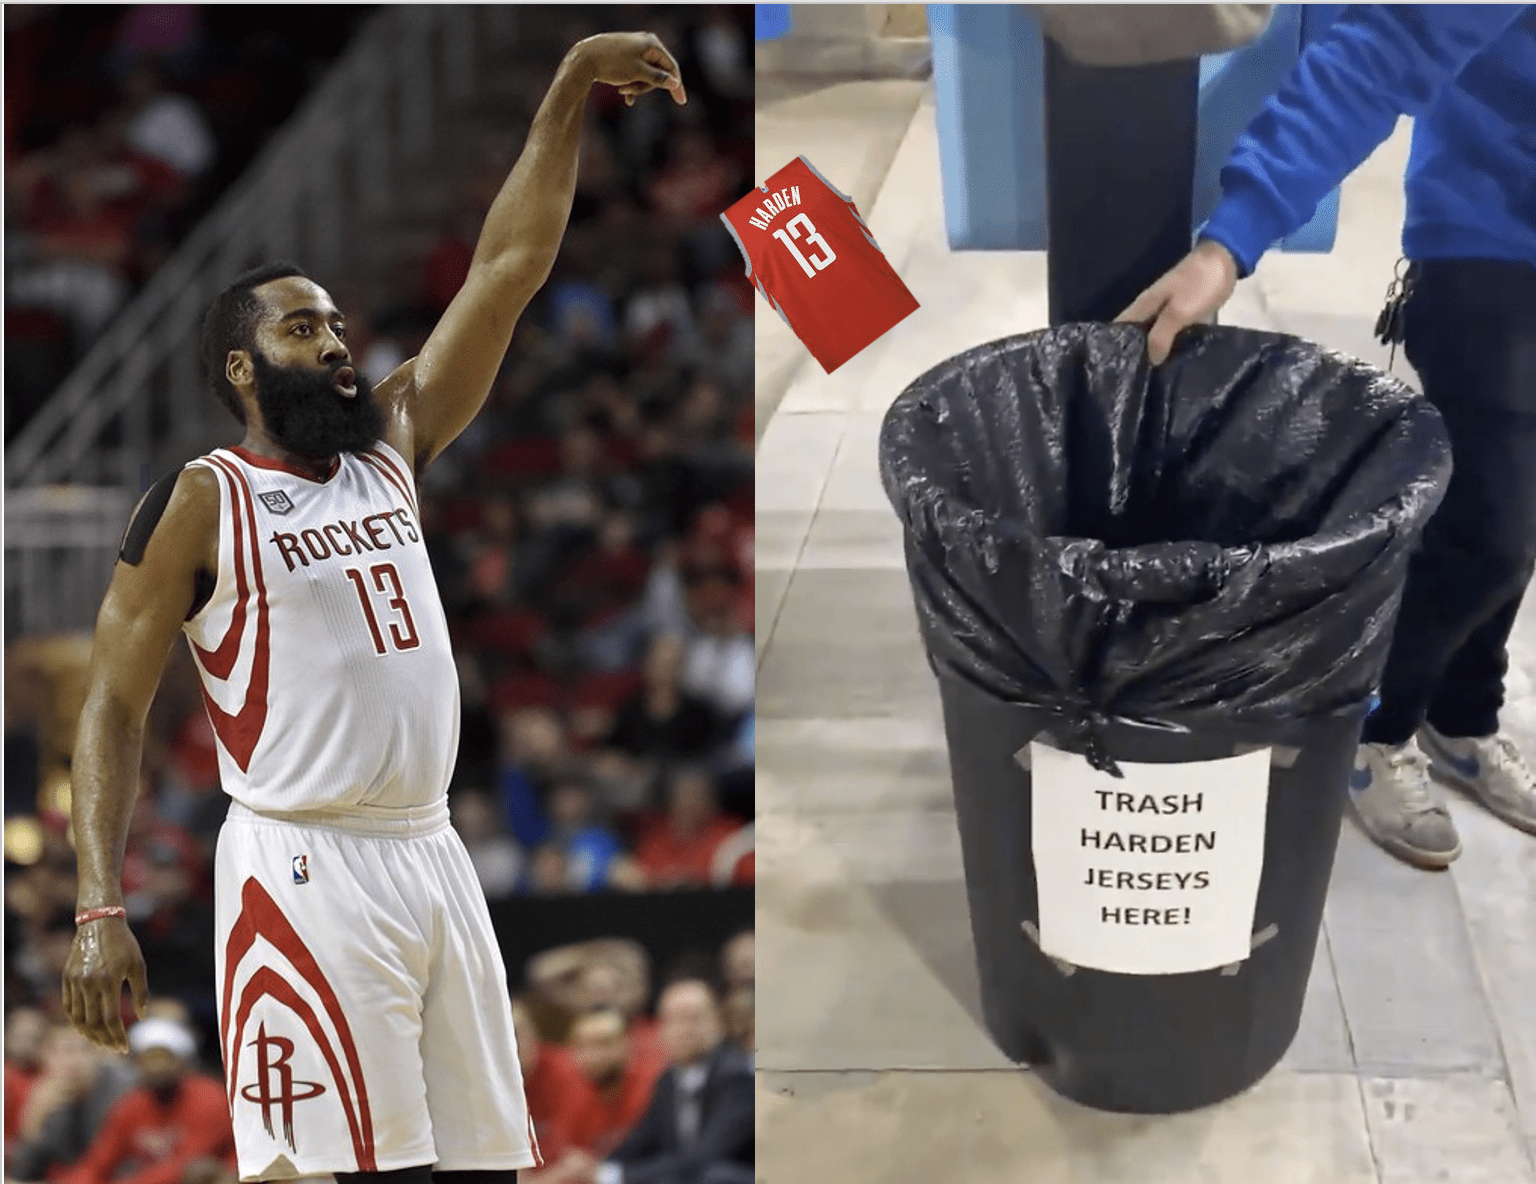 Houston Car Wash Offers Free Washes for Harden Jerseys